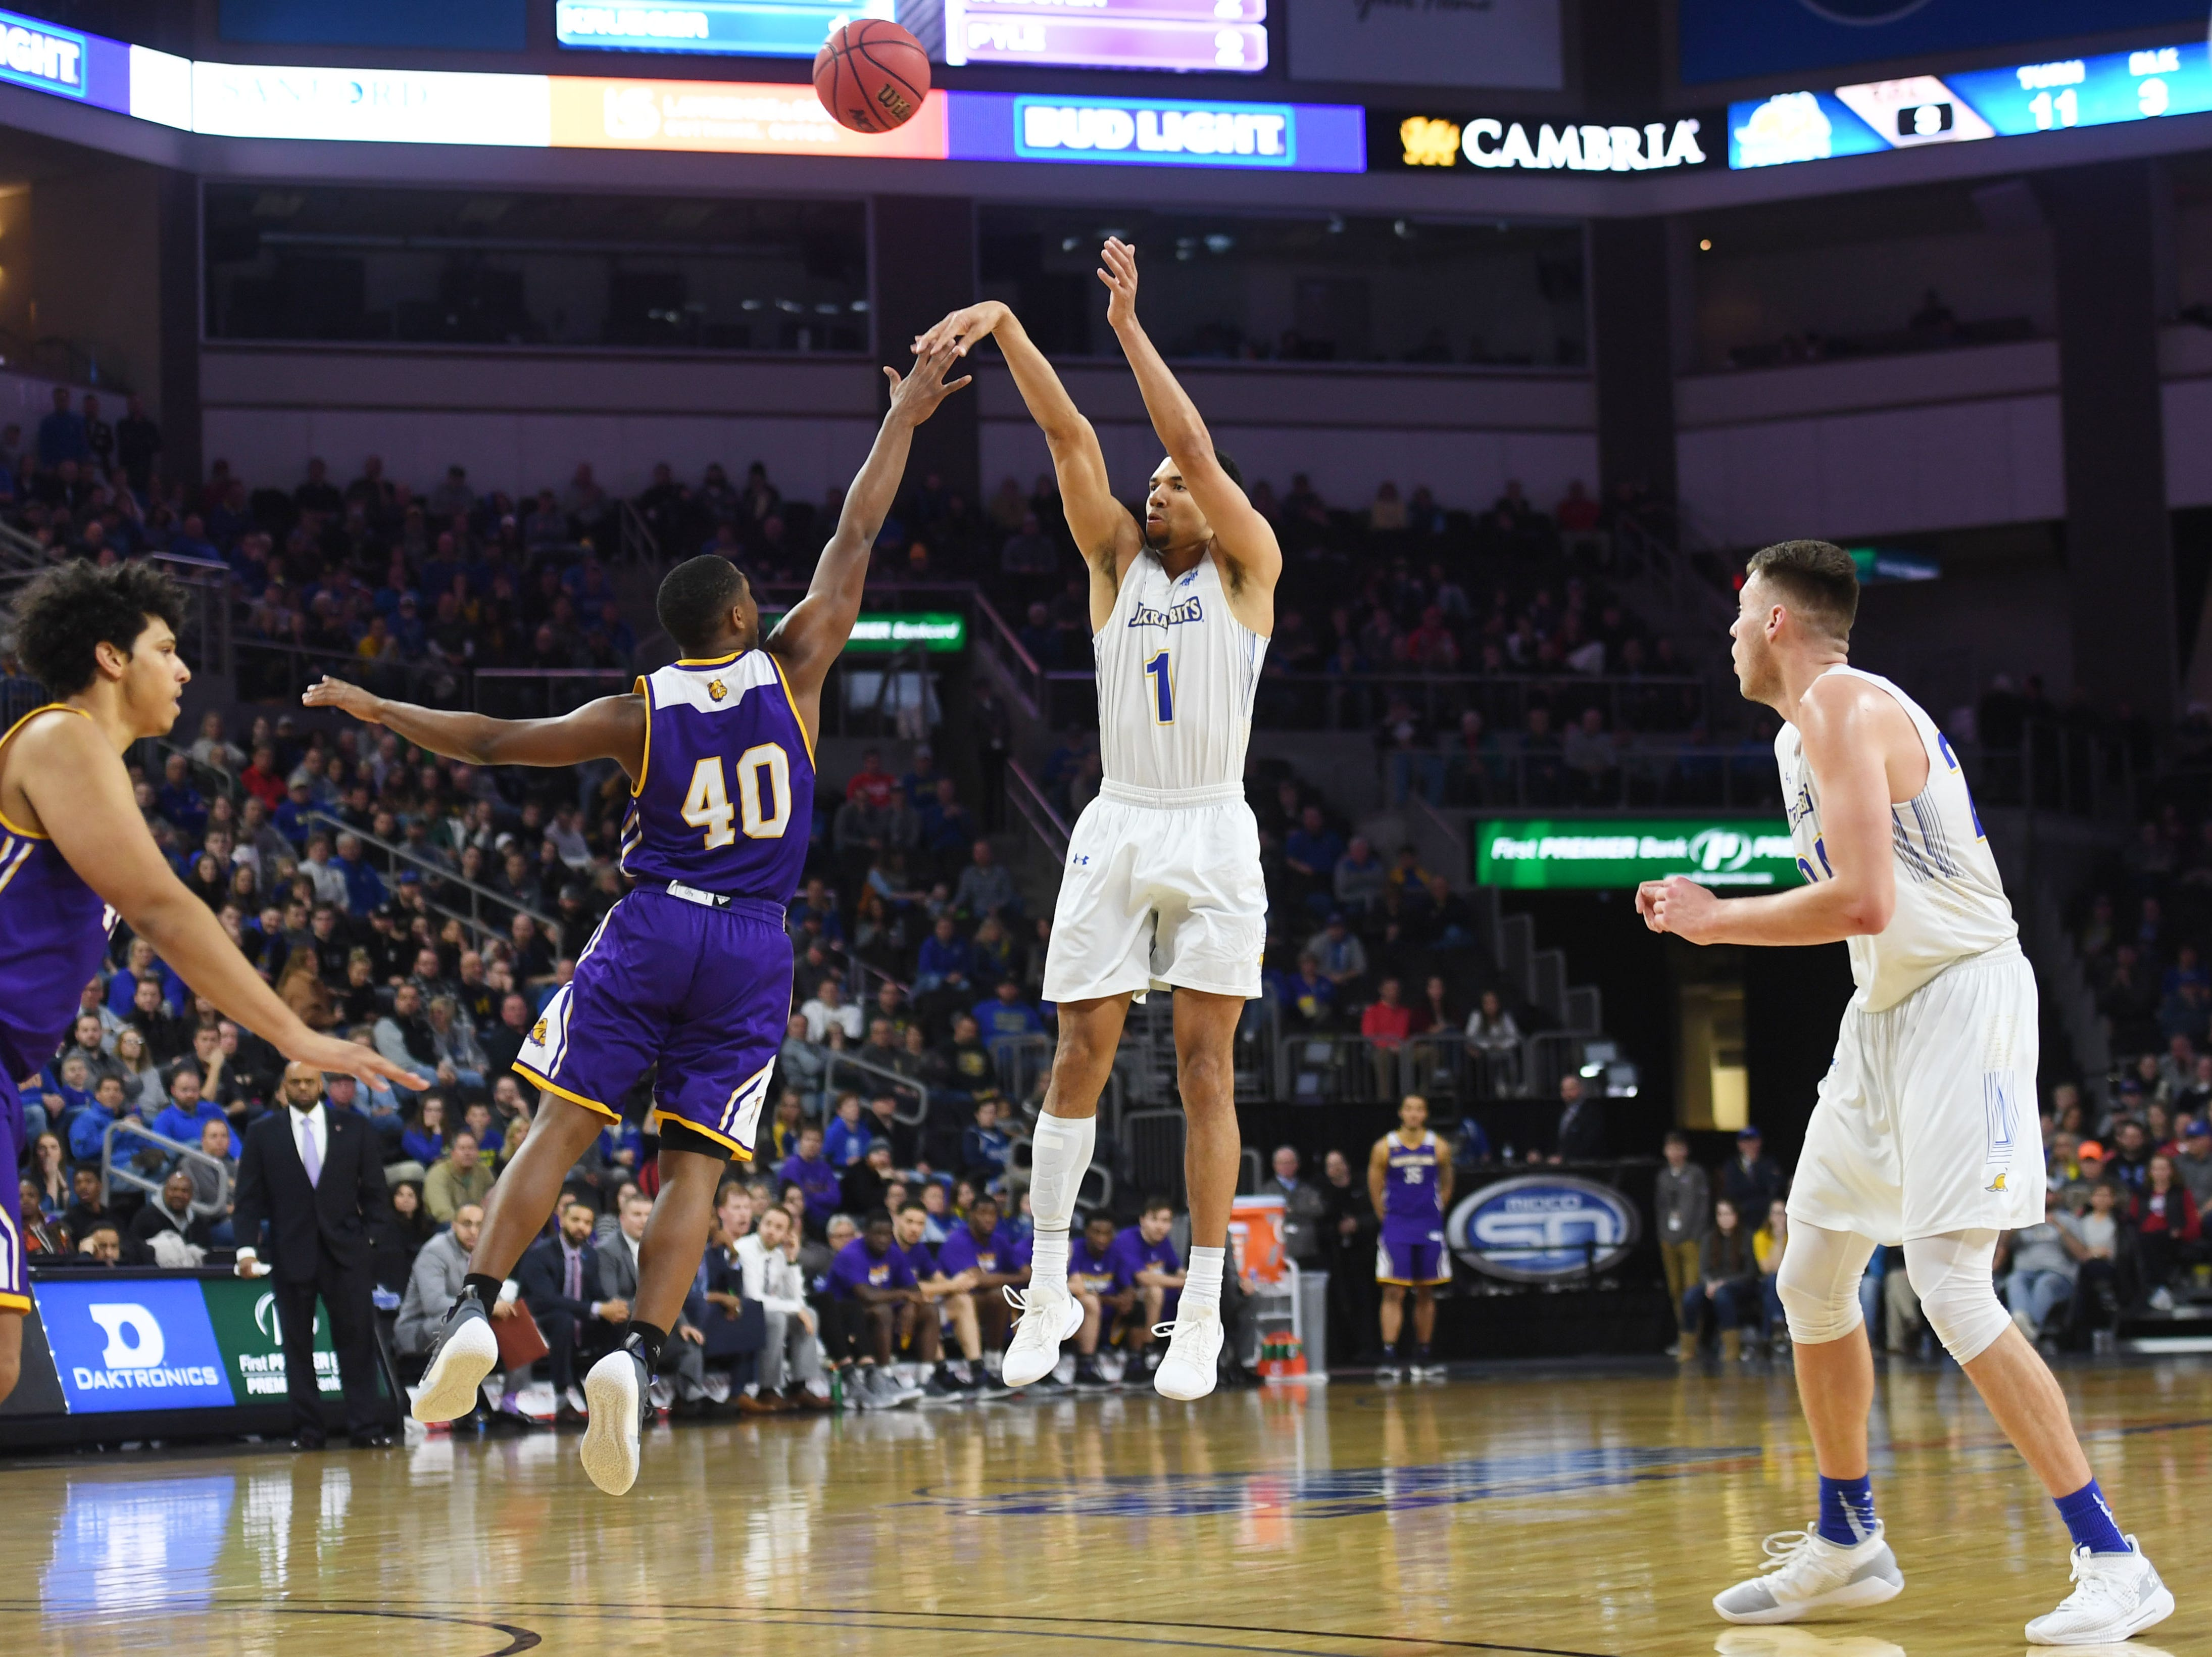 SDSU's Skyler Flatten takes a shot against Western Illinois during the game Saturday, March 9, in the Summit League tournament at the Denny Sanford Premier Center in Sioux Falls.